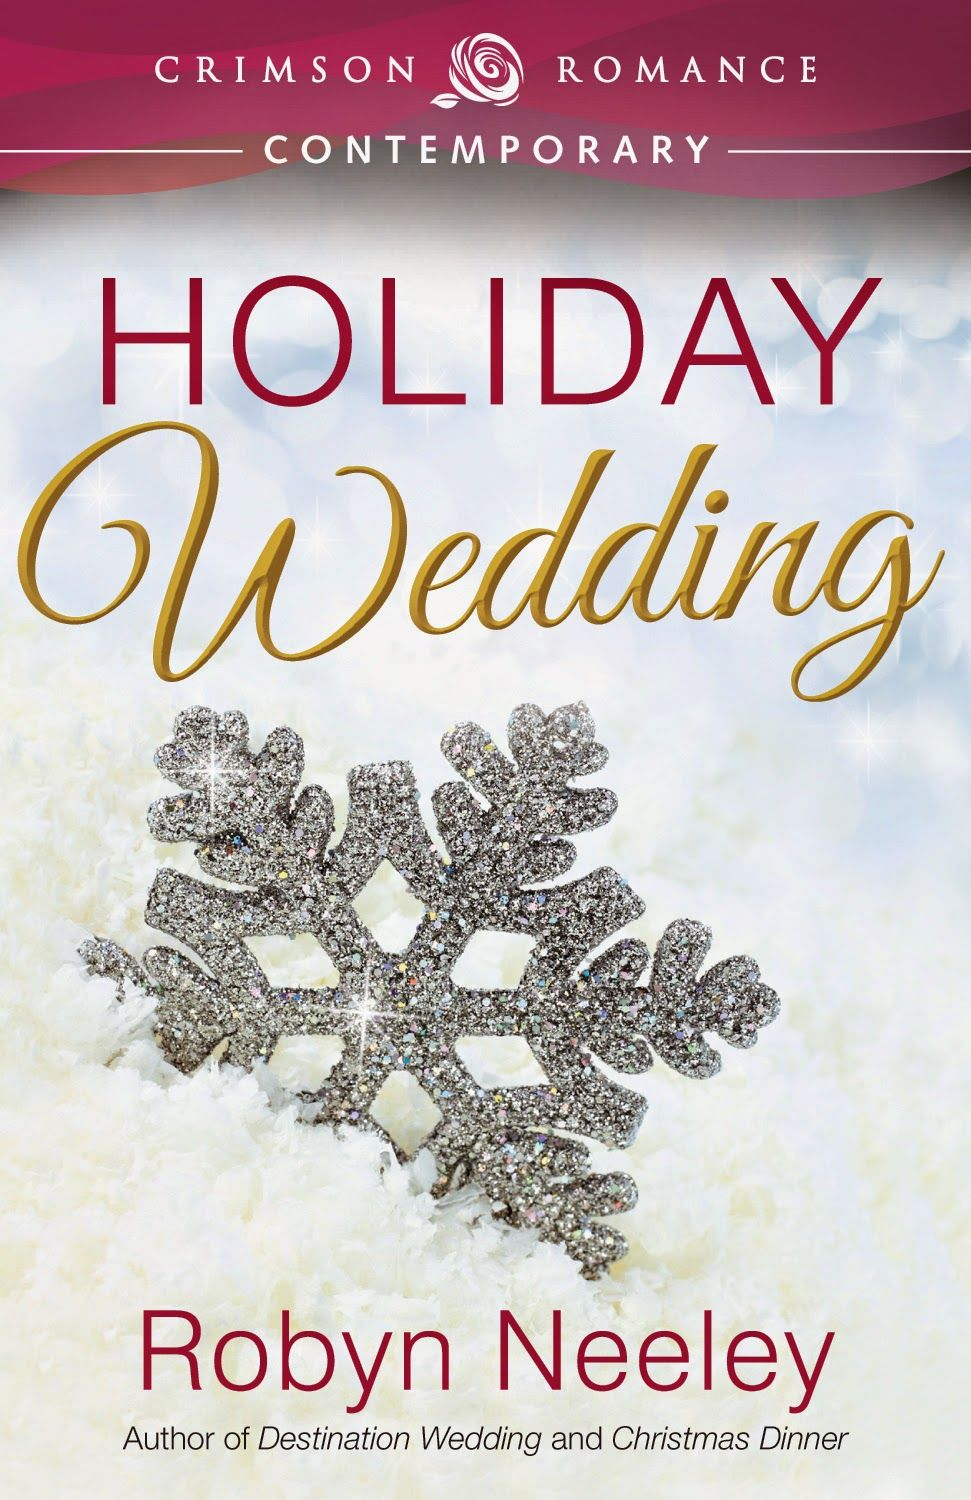 Excerpt & Giveaway for Holiday Wedding by Robyn Neeley The author is giving away a $5.00 Amazon GiftCard and electronic copy of Destination Wedding for winner. Second prize 1 electronic copy of a Backlist Title! Ends December 14th 2014.